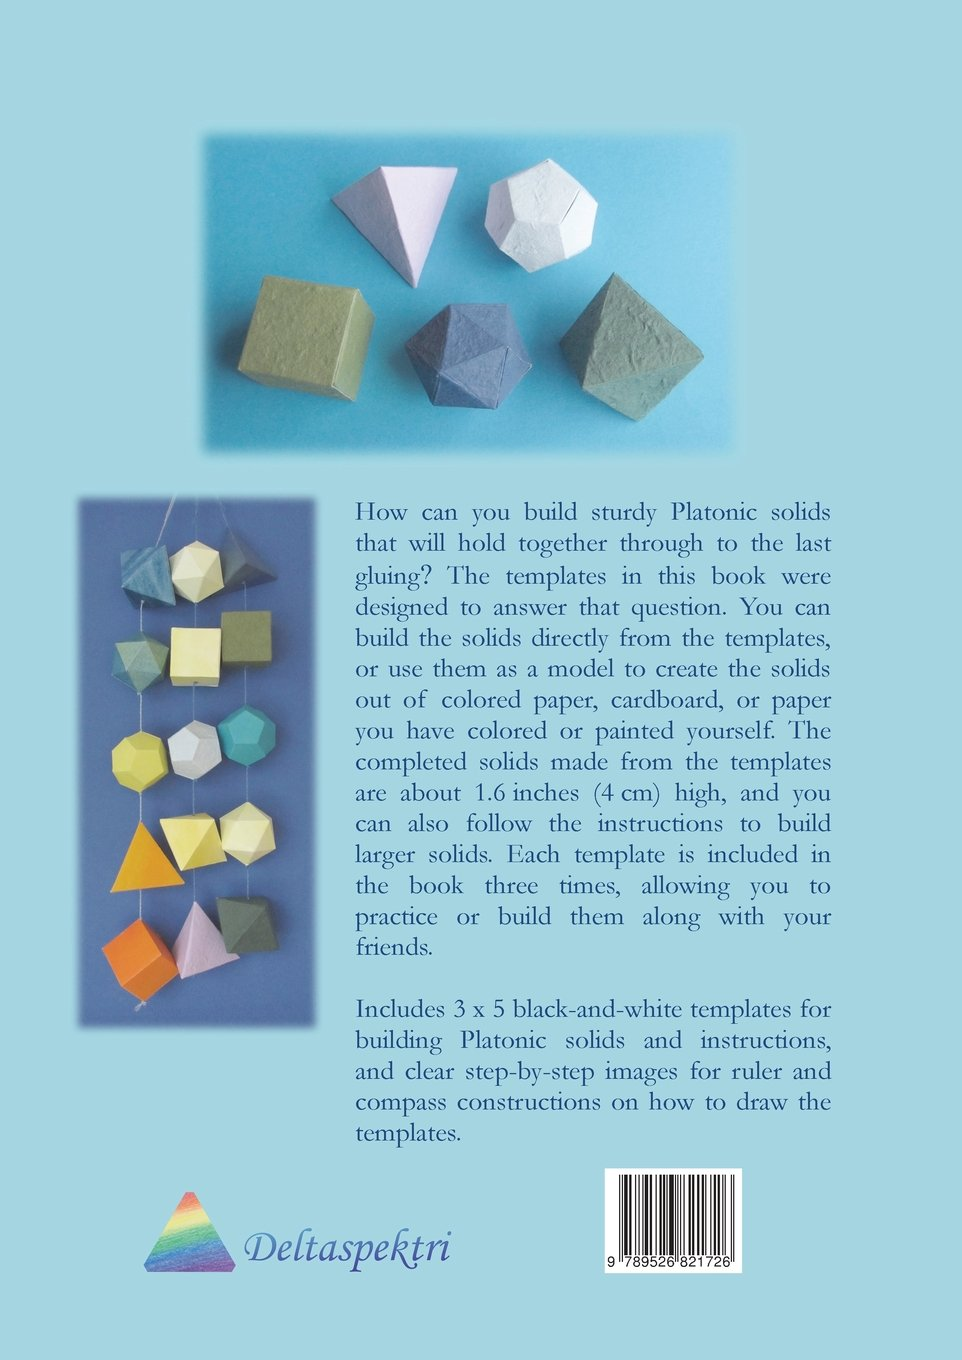 Buy Building Platonic Solids How To Construct Sturdy Platonic